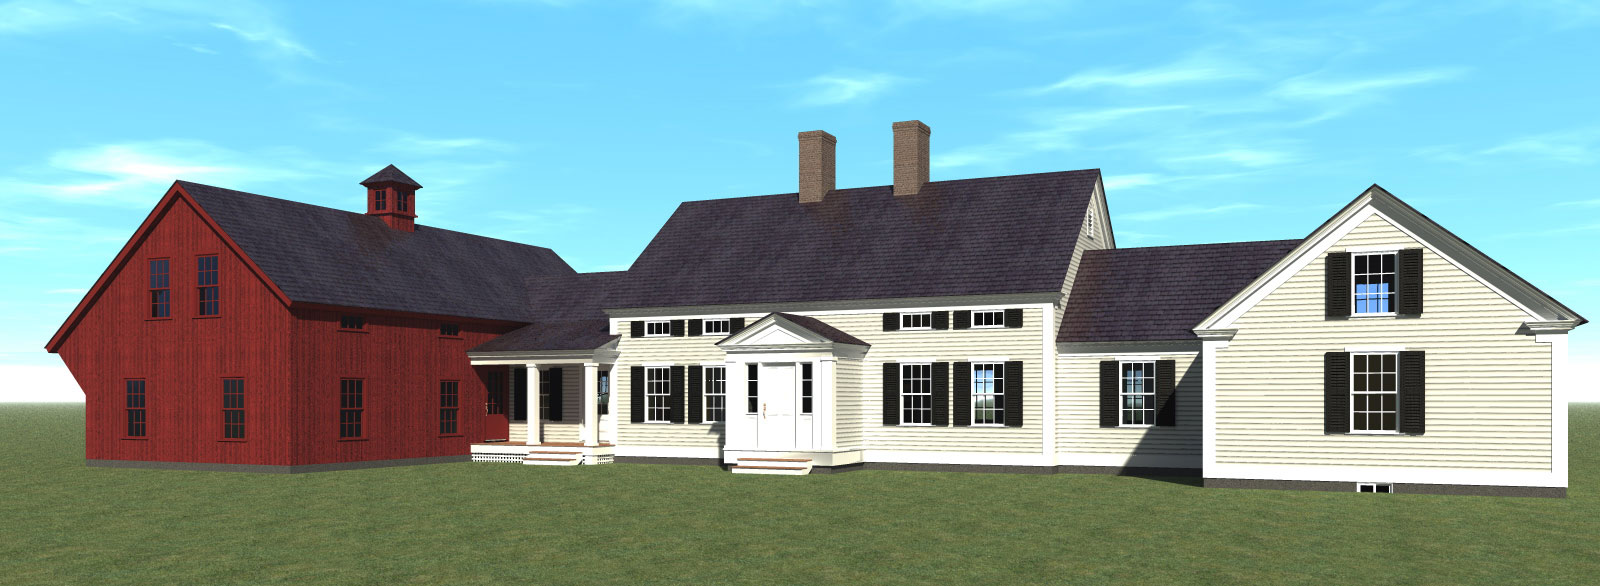 Historic House Plans New England Farmhouse House Design